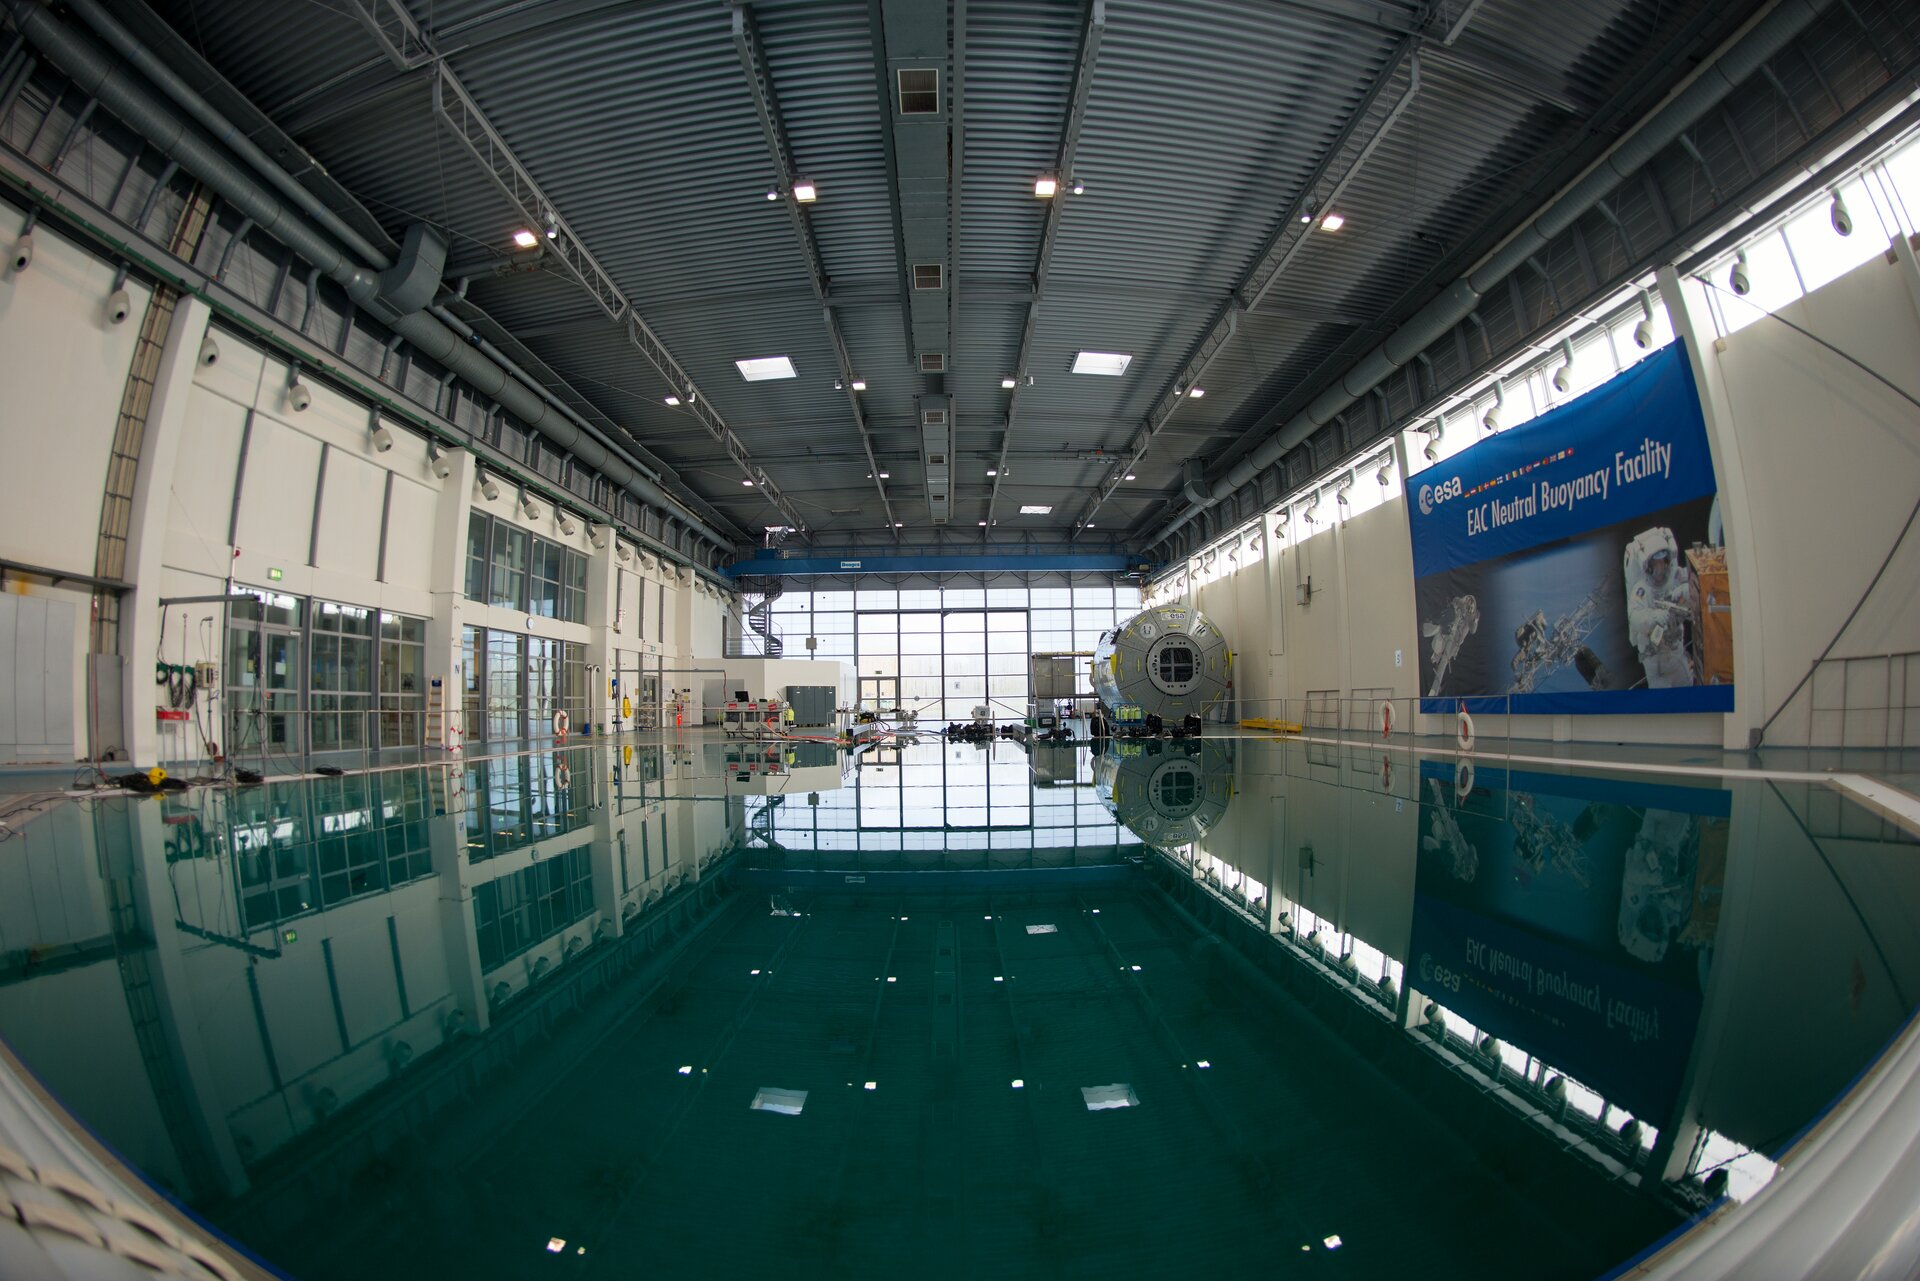 ESA's Neutral Buoyancy Facility at EAC